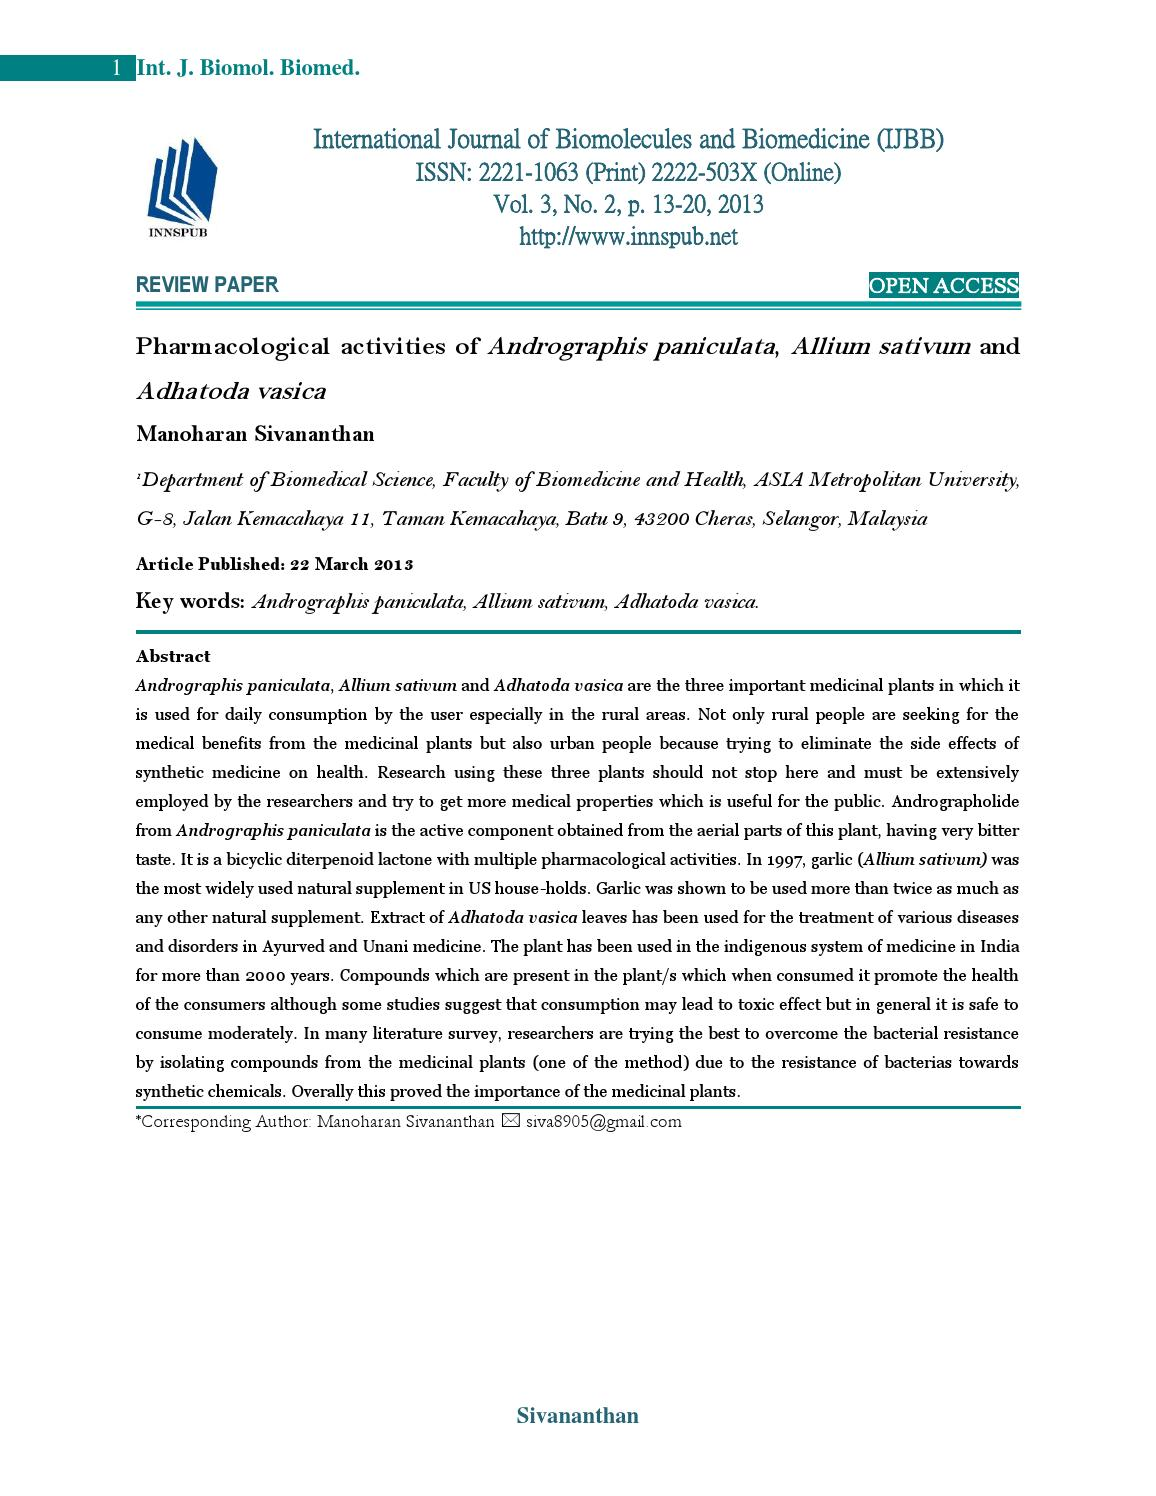 andrographis paniculata research paper Research reveals few adverse reactions reported with the use of a  andrographis paniculata in the symptomatic treatment of uncomplicated upper respiratory.